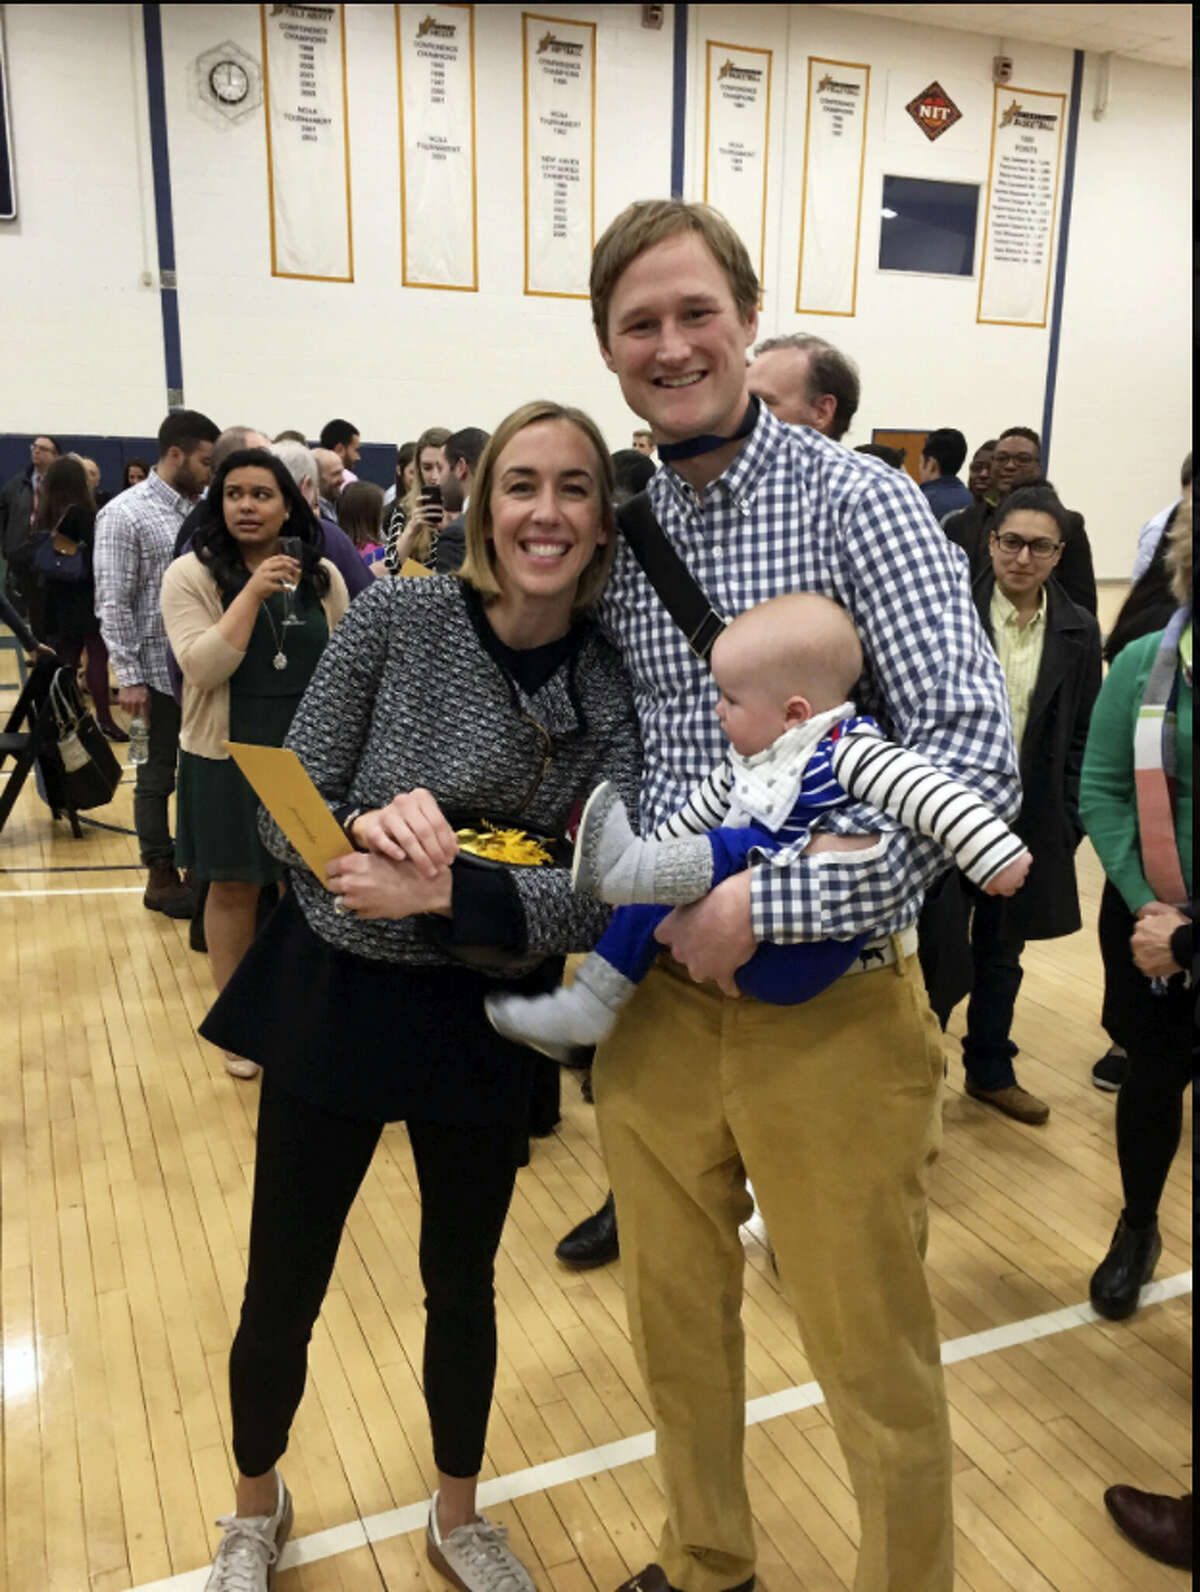 Abigail Gurall, husband, Ford, and son, Jack, on Match Day, when graduating medical students found out what residency program and speciality they were matched to.